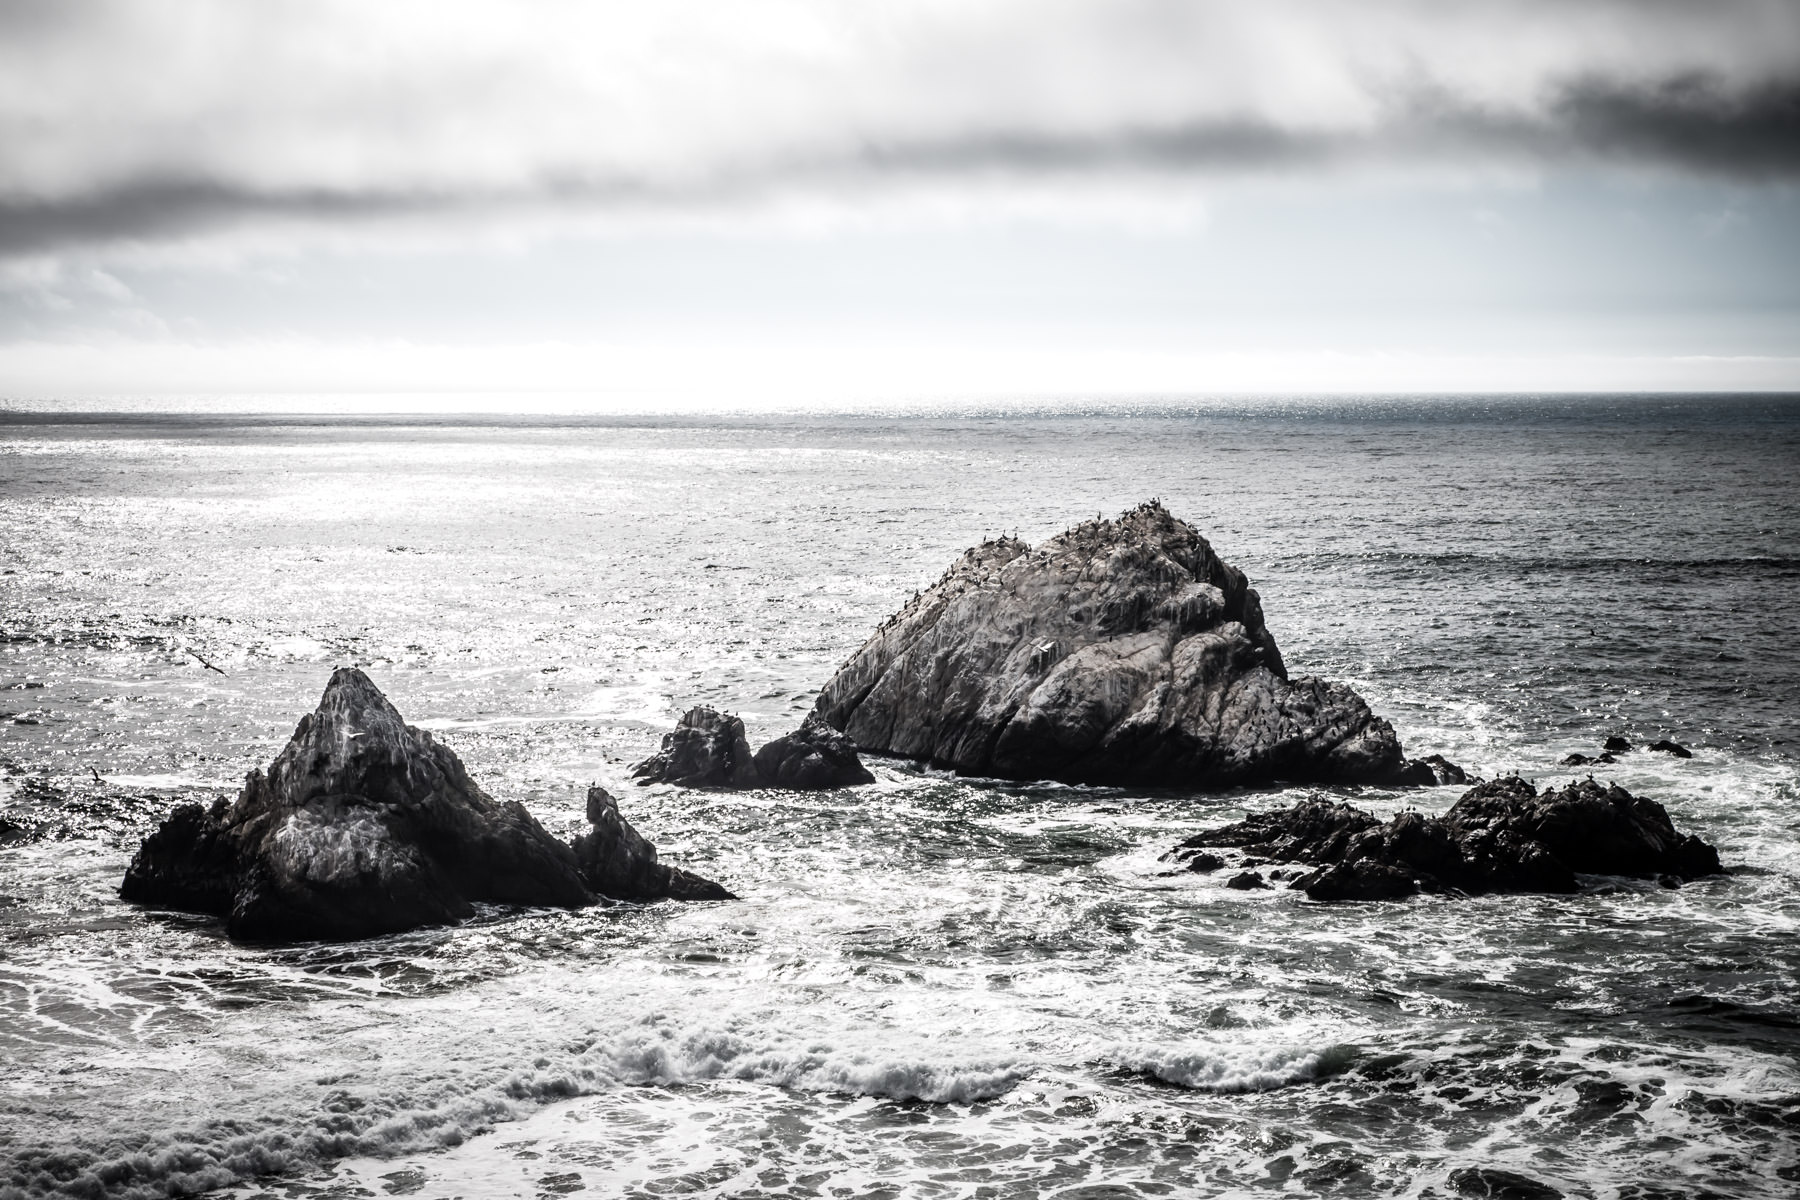 San Francisco's Seal Rocks rise from the Pacific Ocean surf just off the shore of Lands End on the western edge of the city.